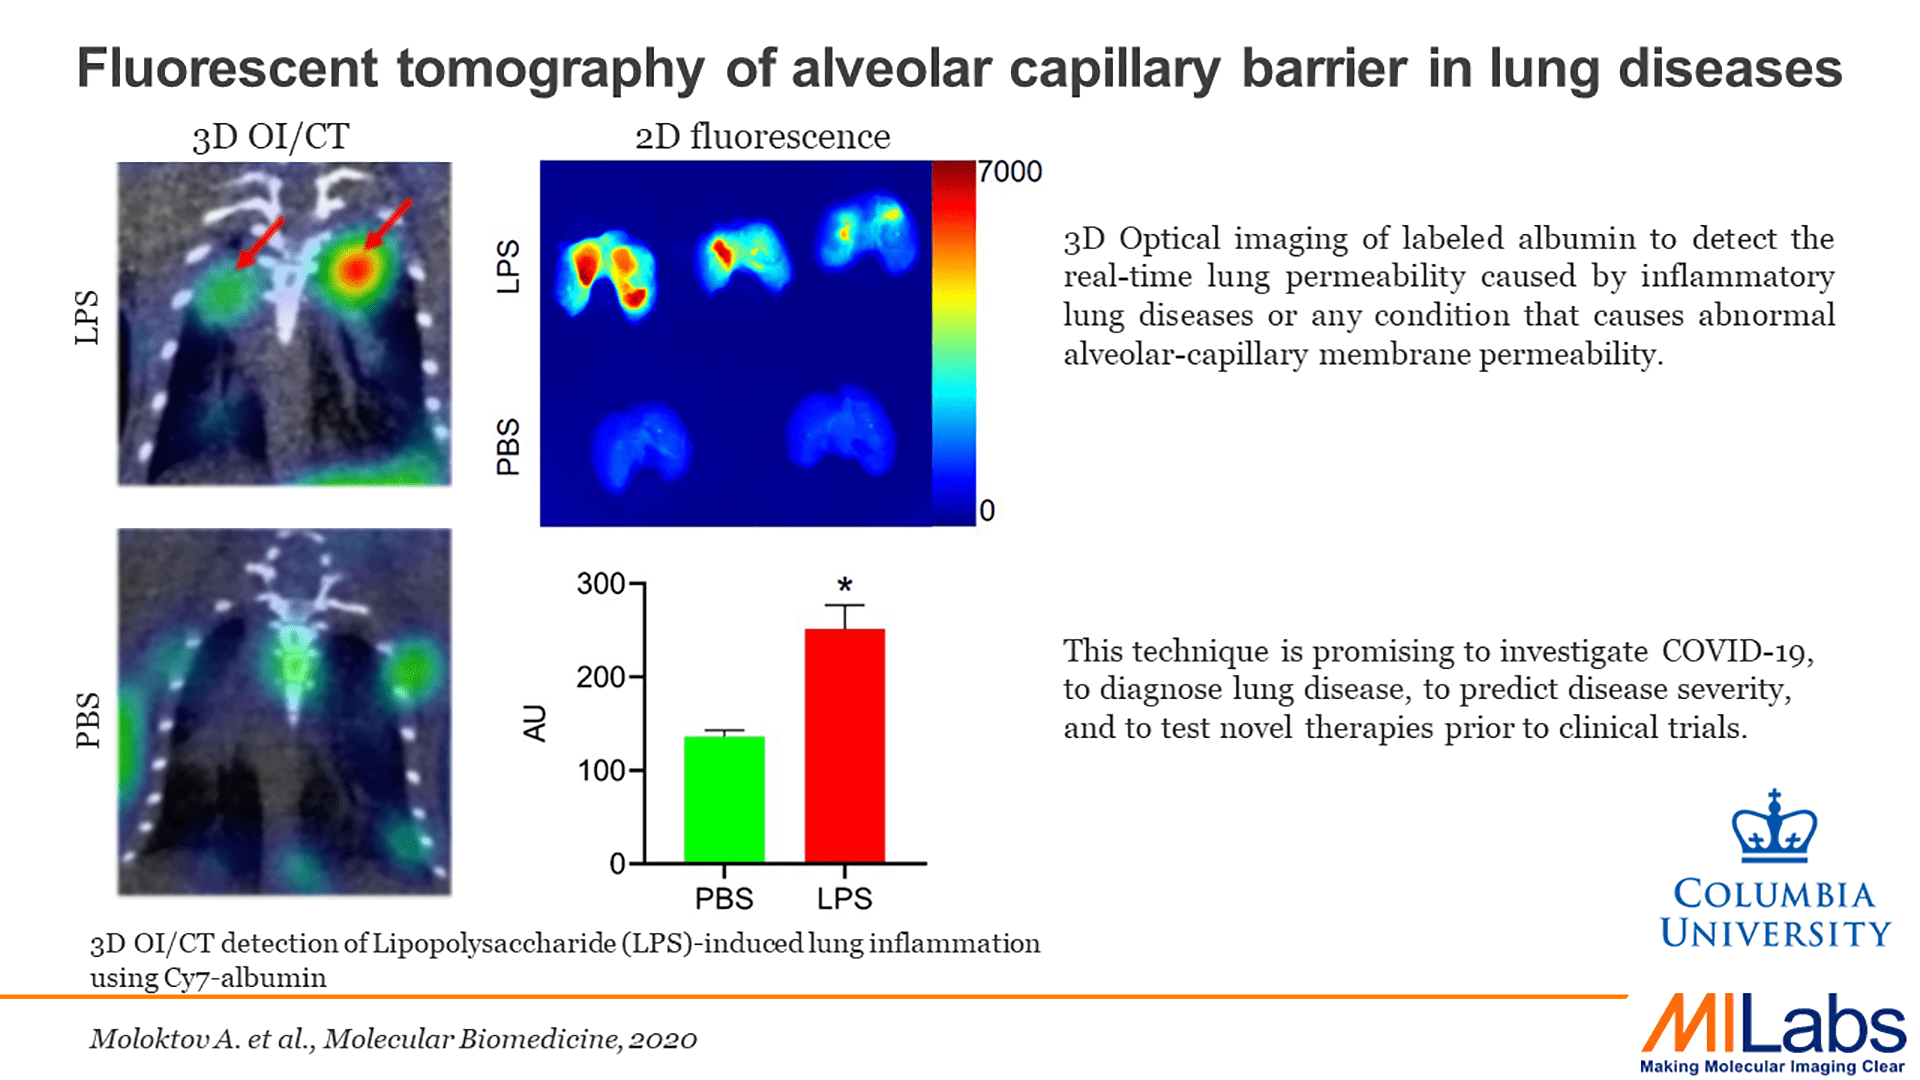 3D optical tomography - lung imaging from Columbia University